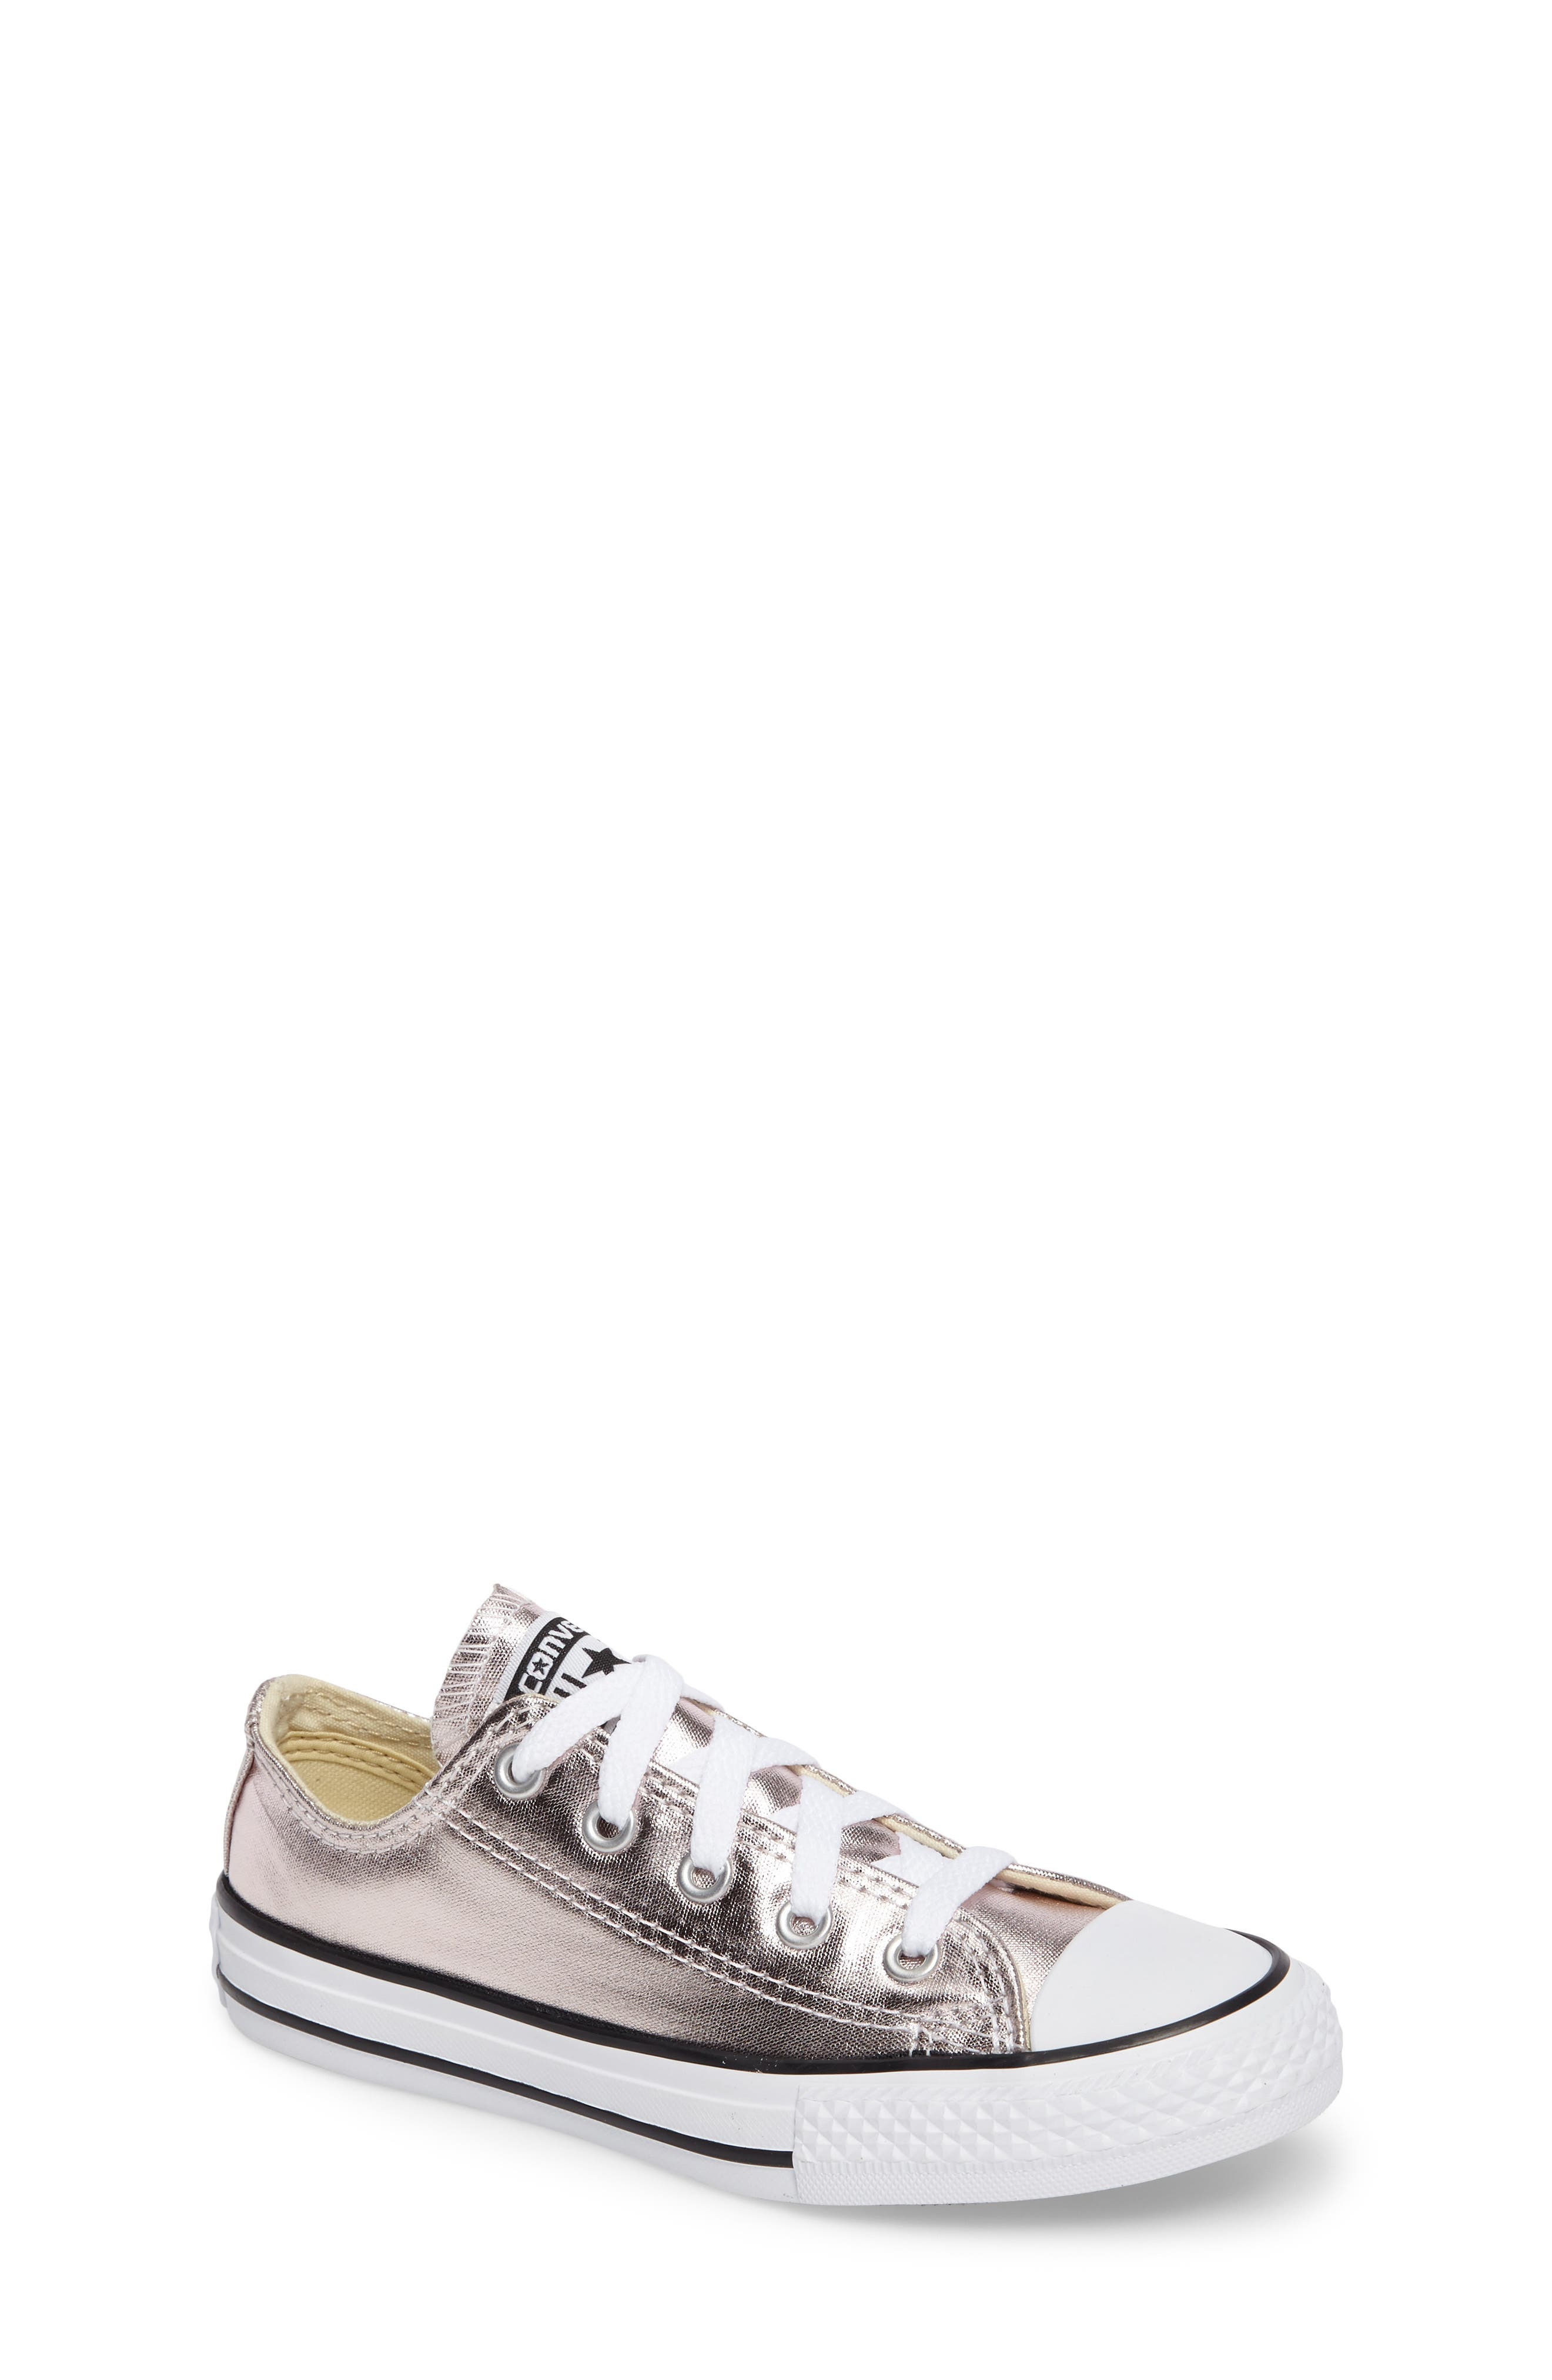 Chuck Taylor<sup>®</sup> All Star<sup>®</sup> Ox Metallic Low Top Sneaker,                             Main thumbnail 1, color,                             220